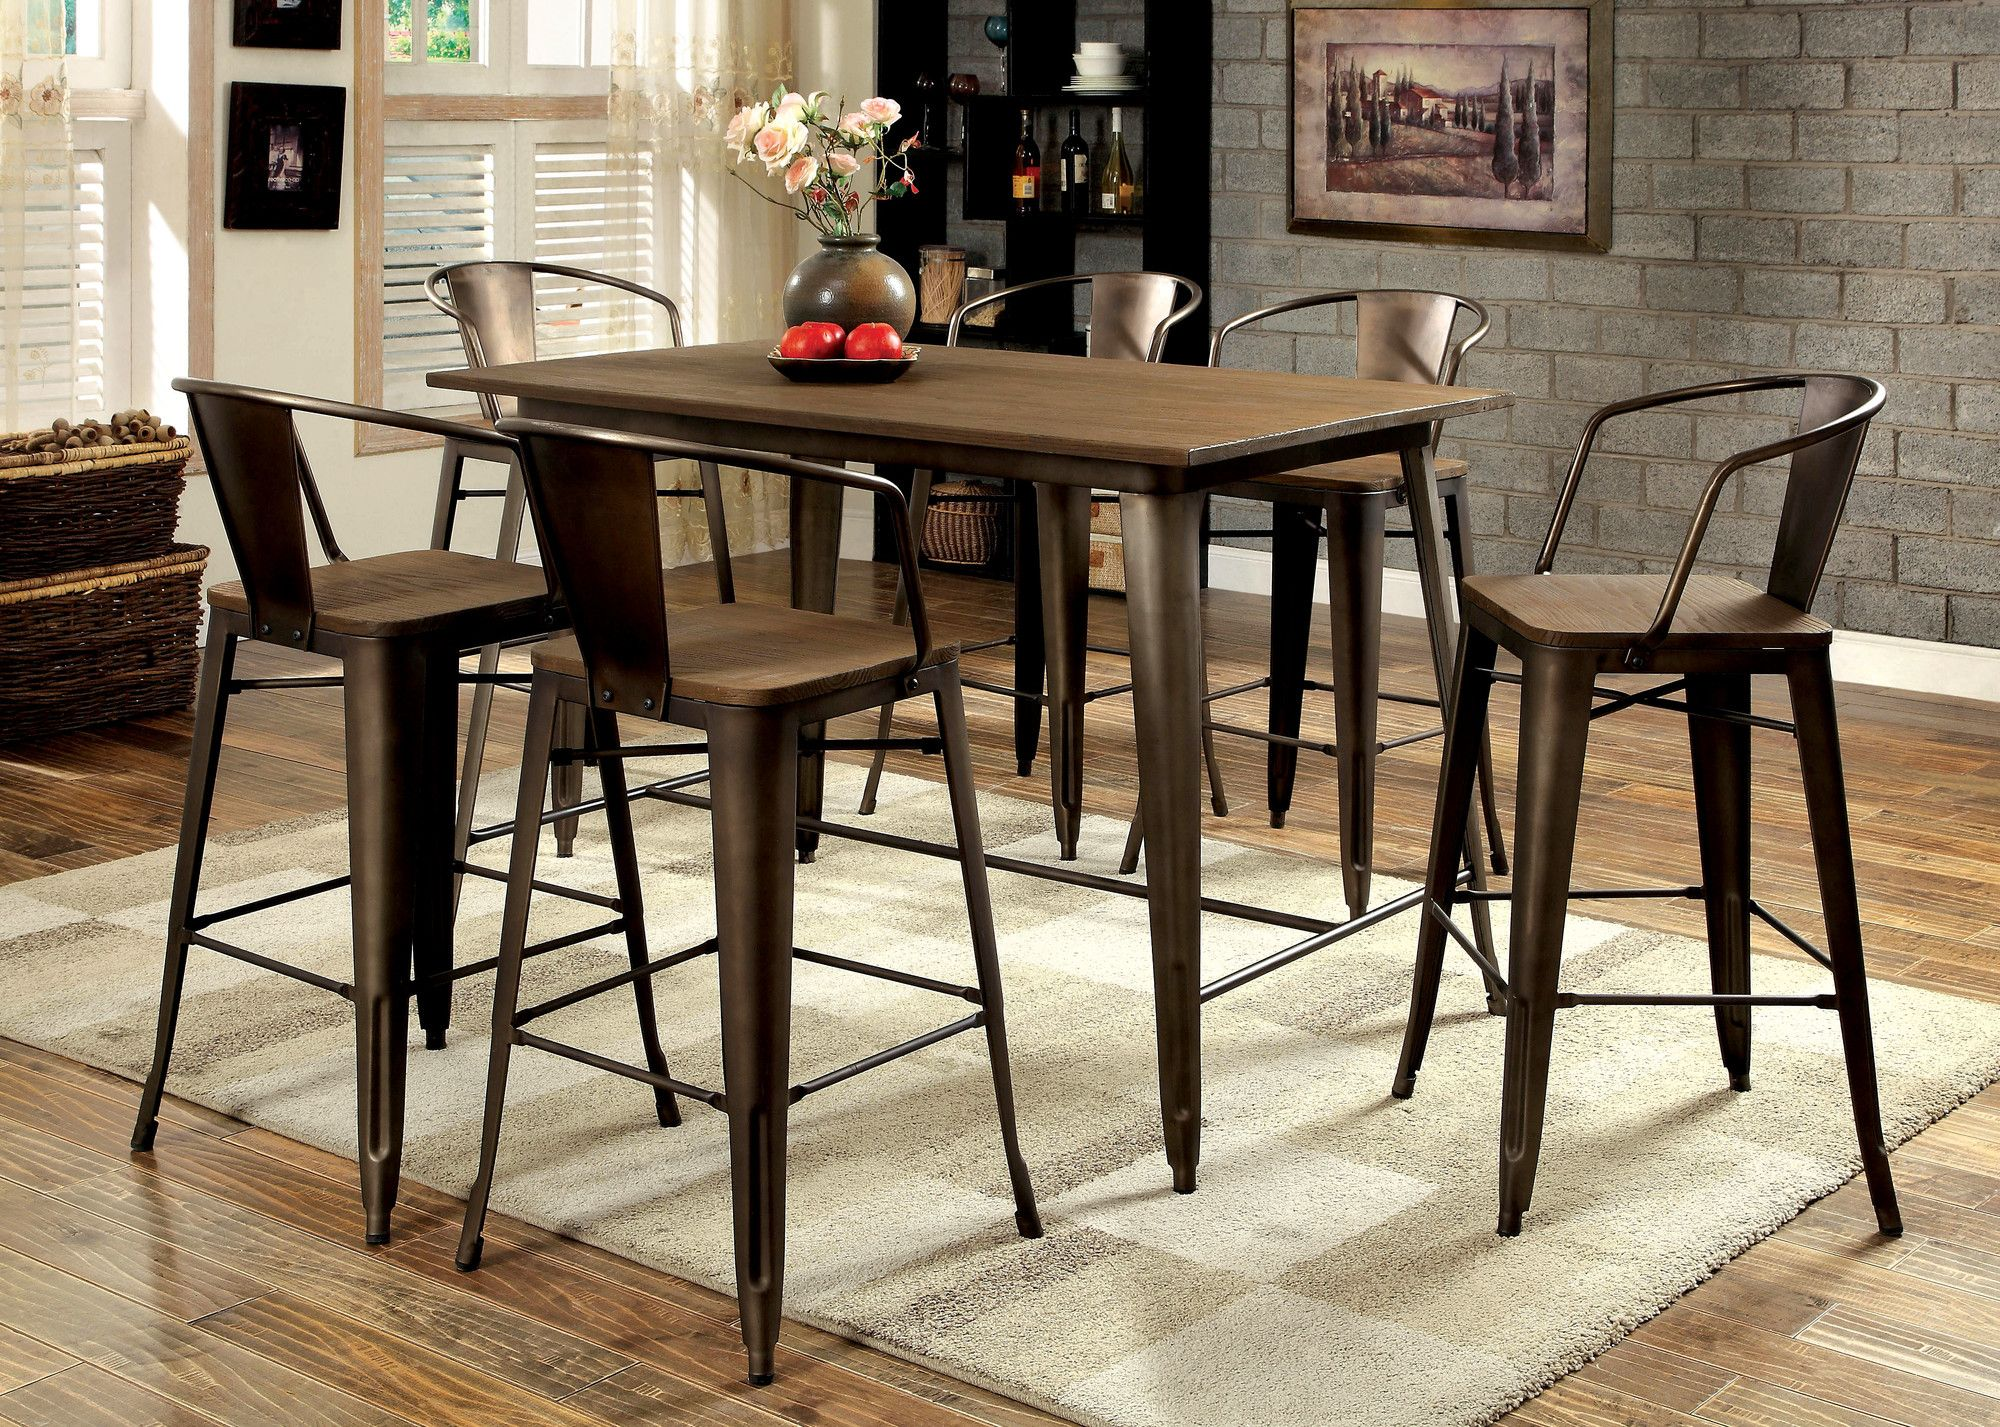 Reedley 7 Piece Counter Height Pub Set : 7 piece pub table set - pezcame.com